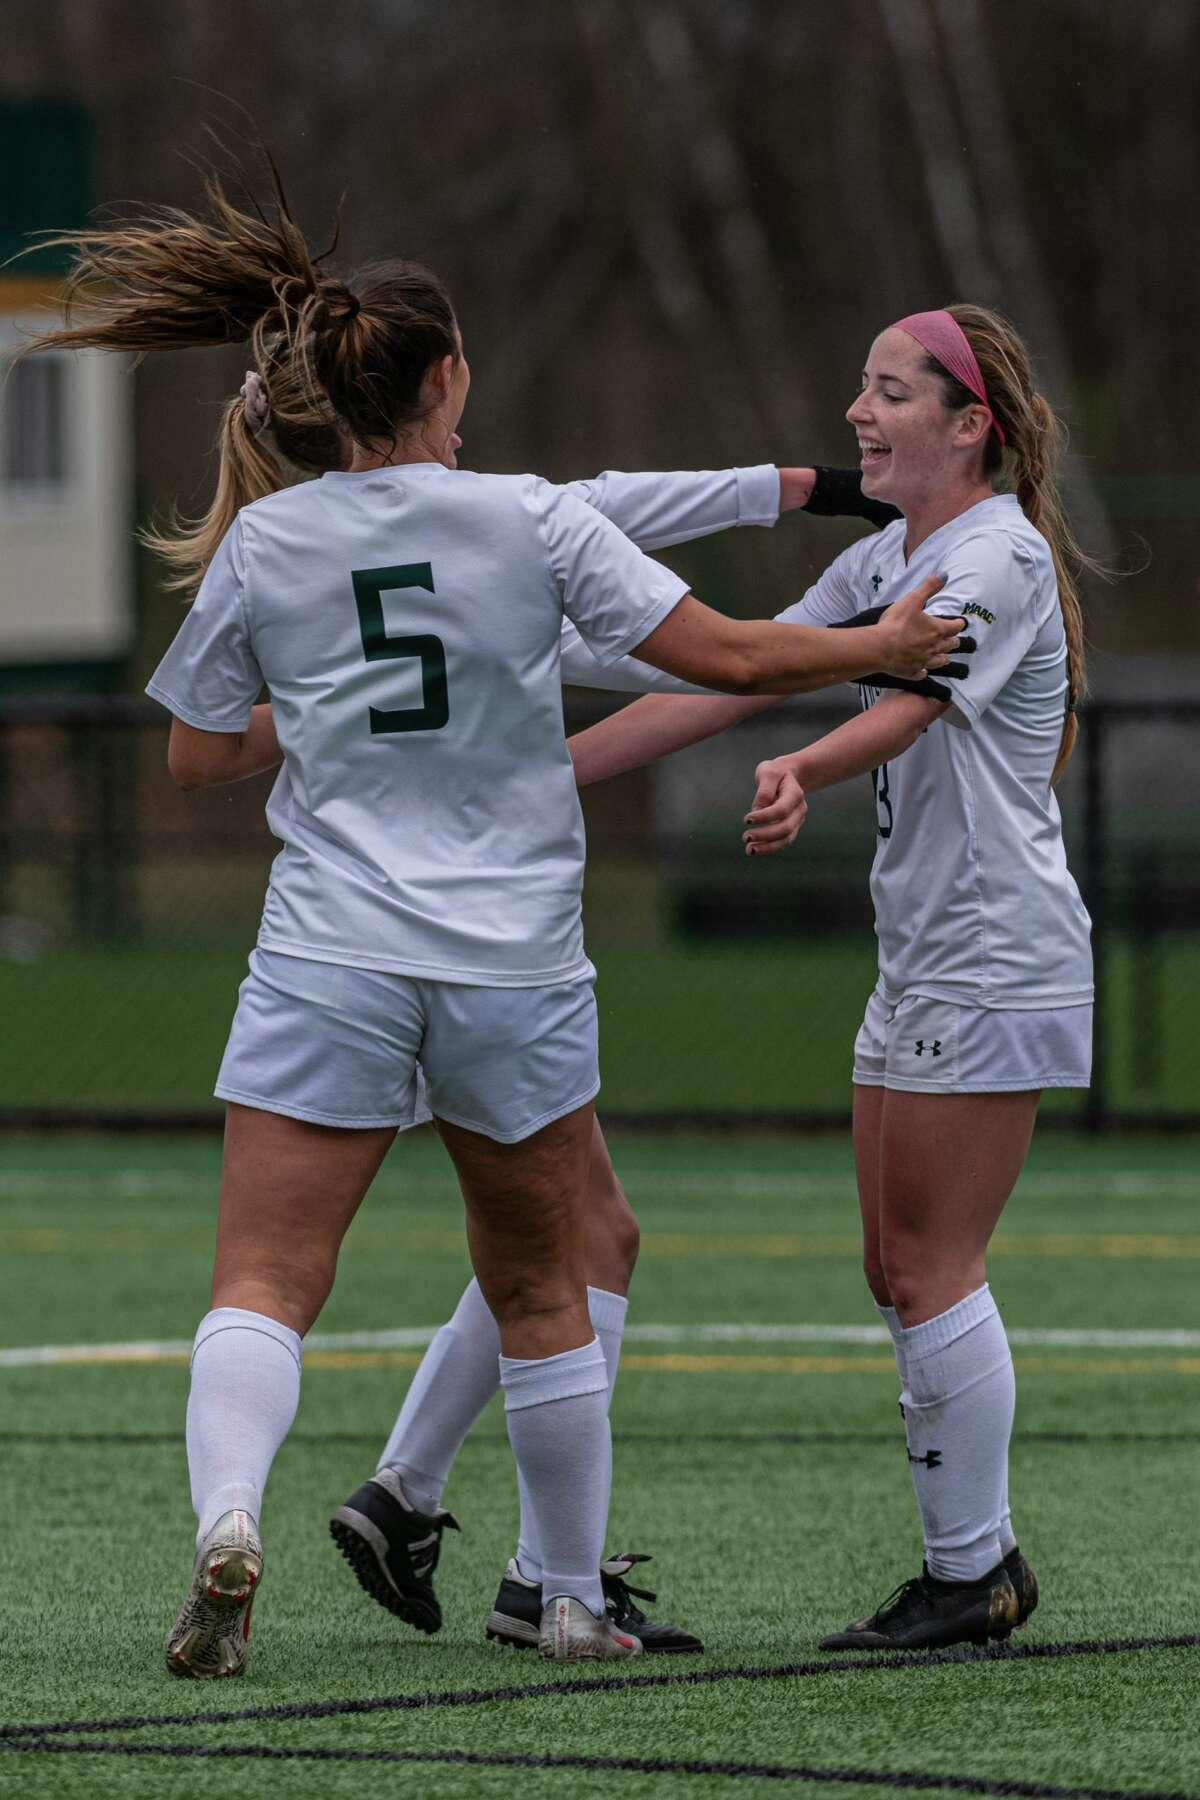 Siena's Carrie Krohn, right,celebrates with teammates after her goal against Rider in their MAAC Tournament semifinal on Monday, April 12, 2021. (Robert Simmons / Siena Athletics)